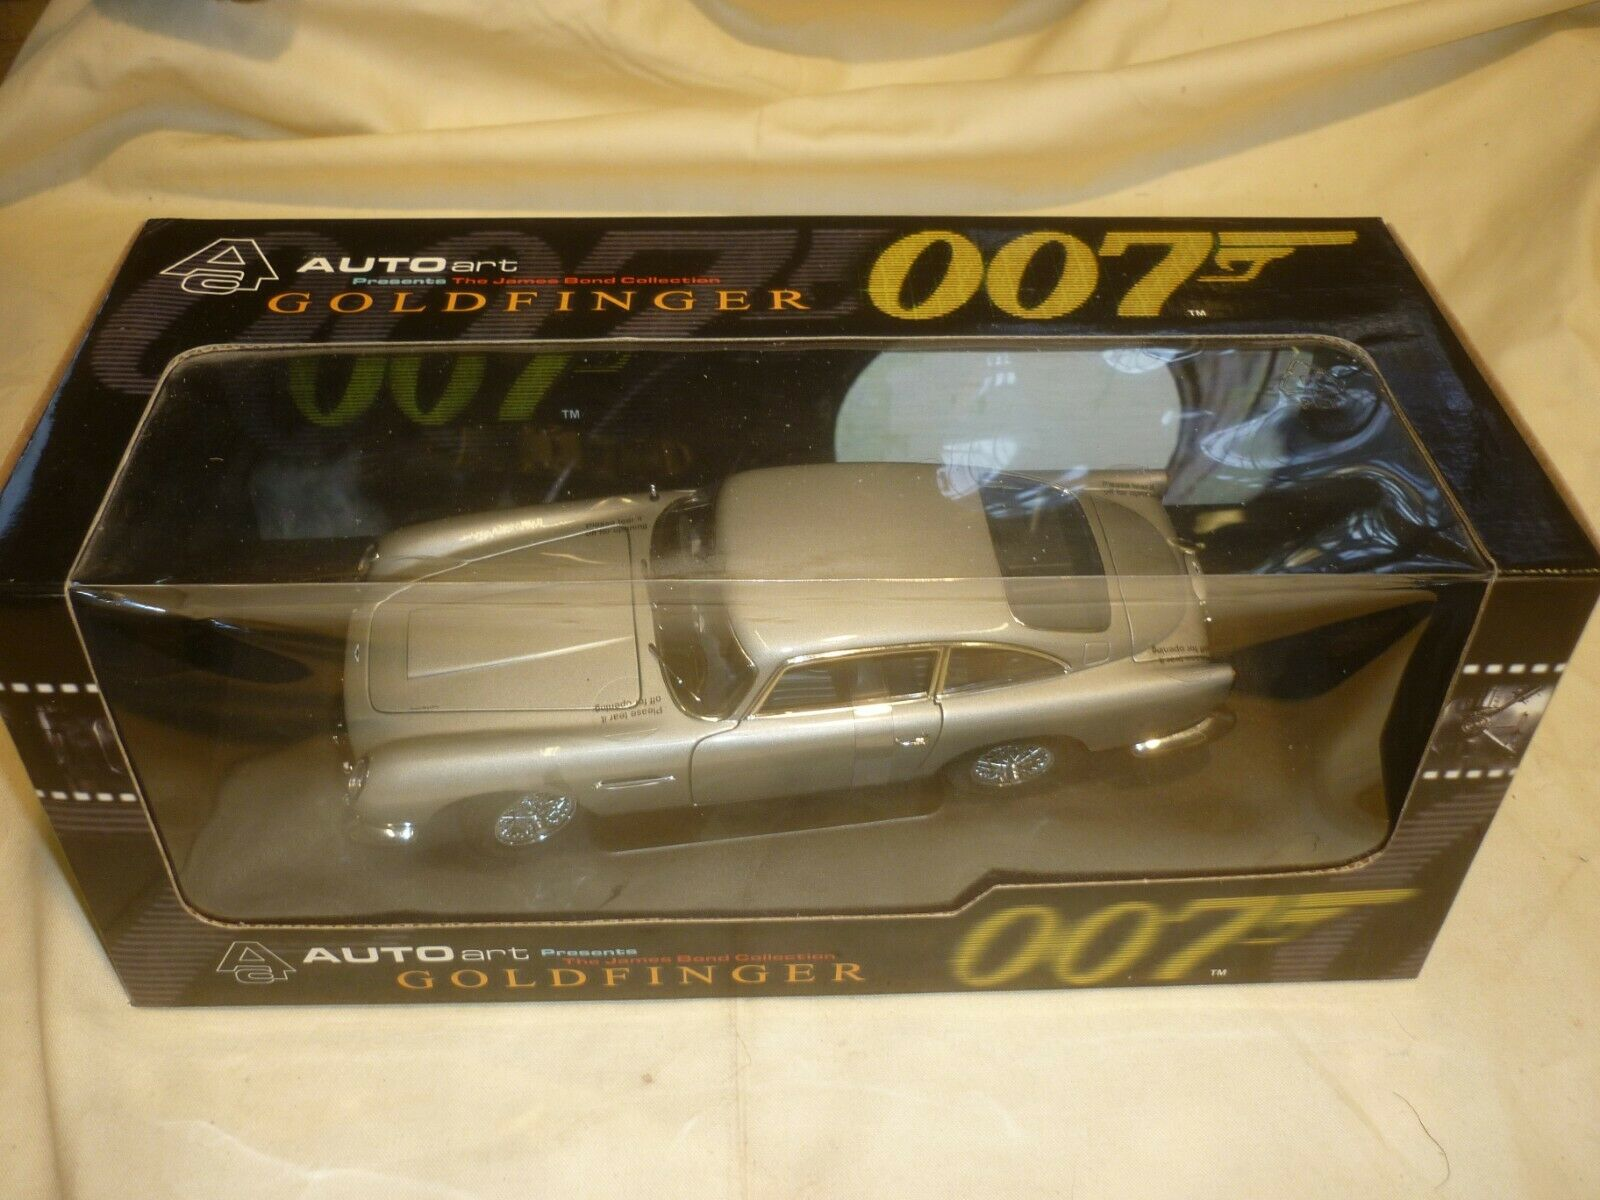 AutoArt James Bond's Aston Martin DB5   goldFINGER   Boxed